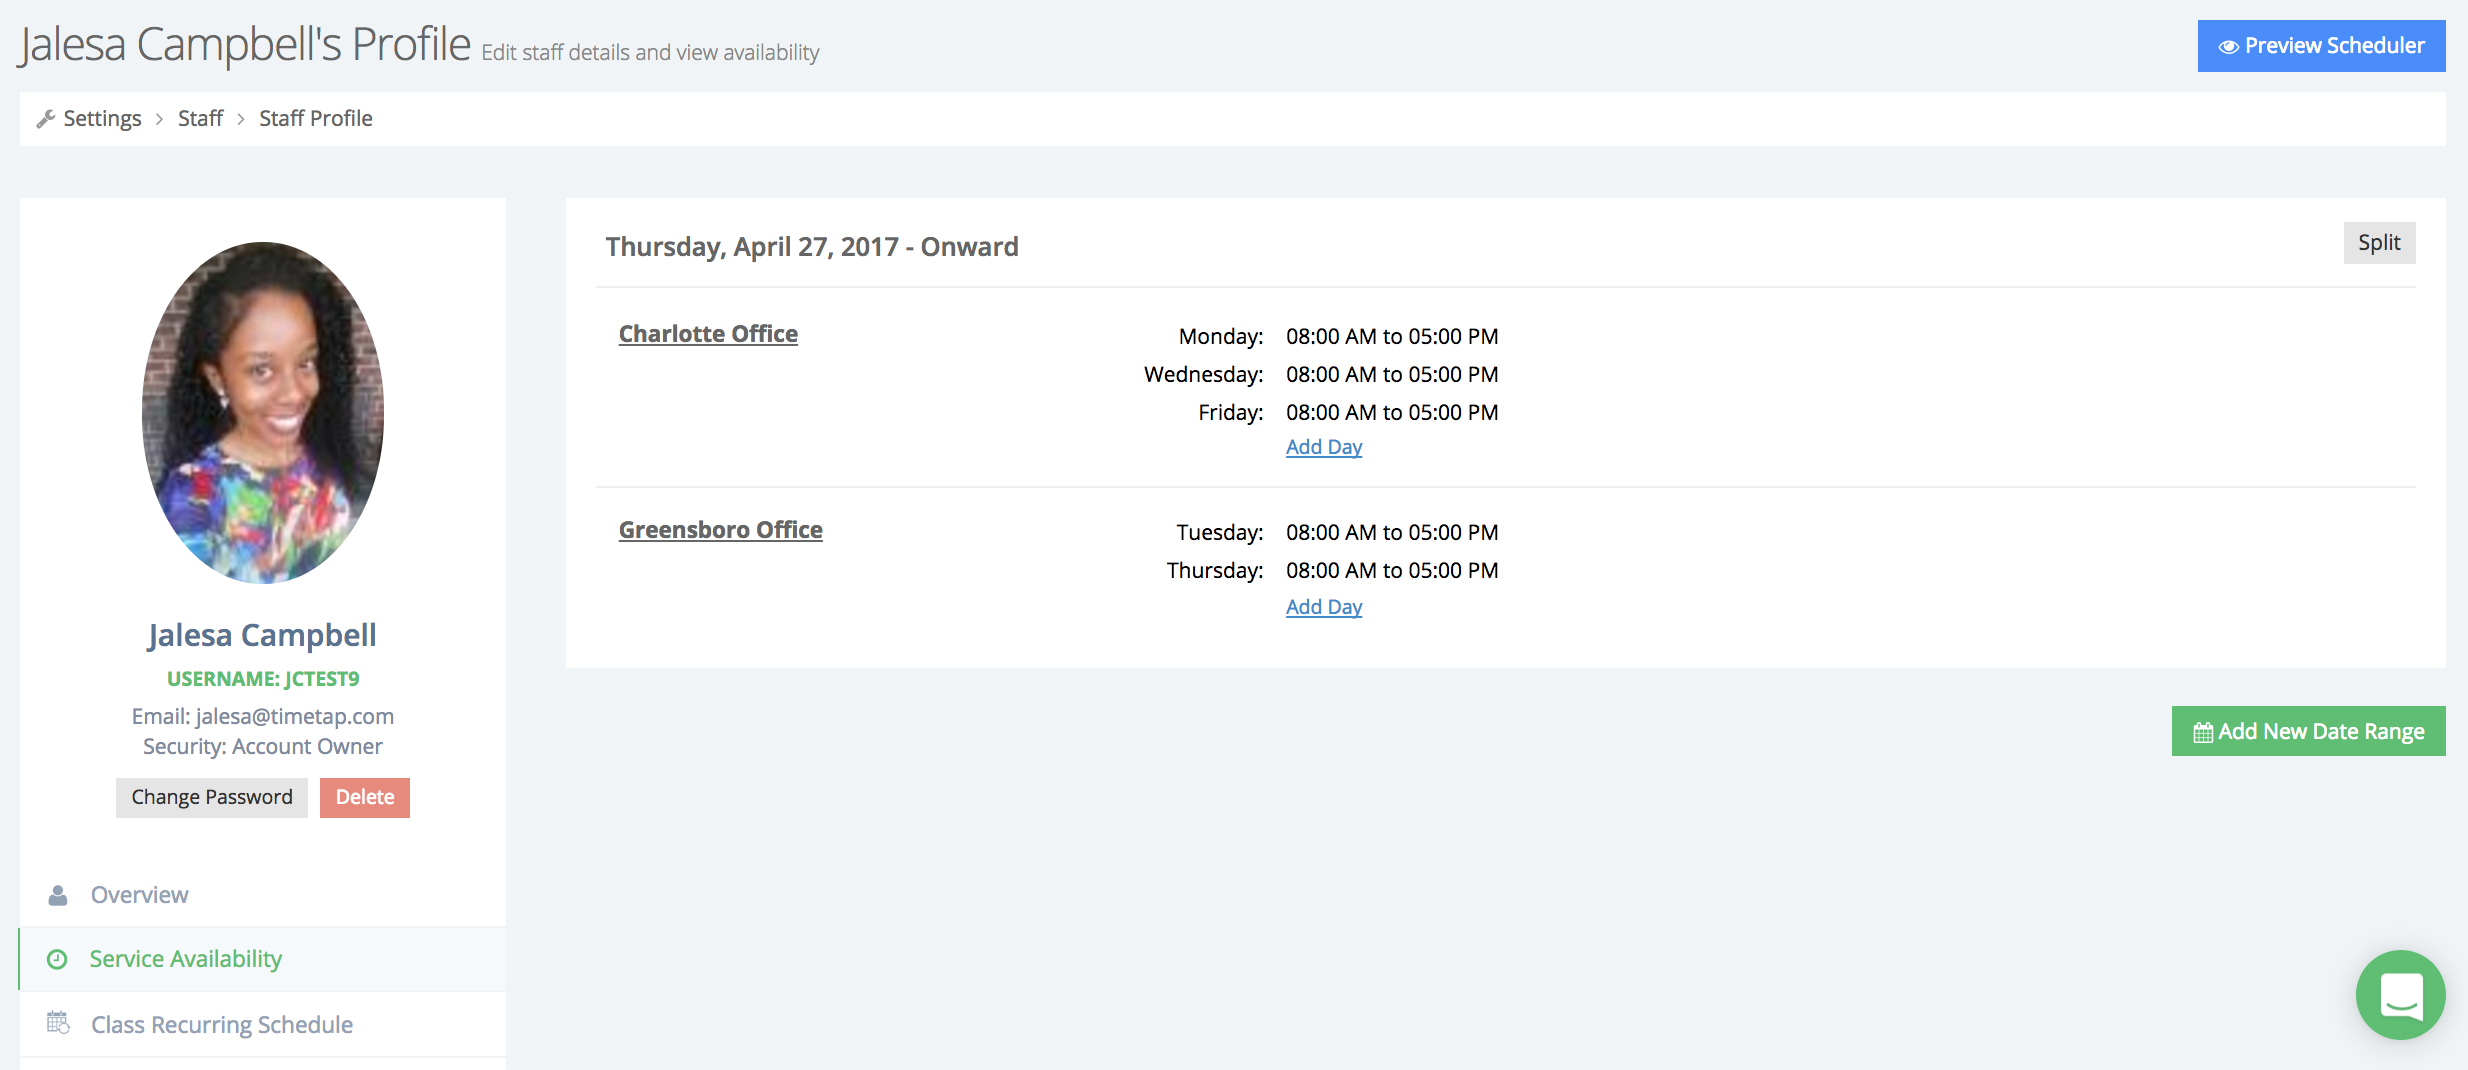 Set staff hours of availability by location for multiple offices